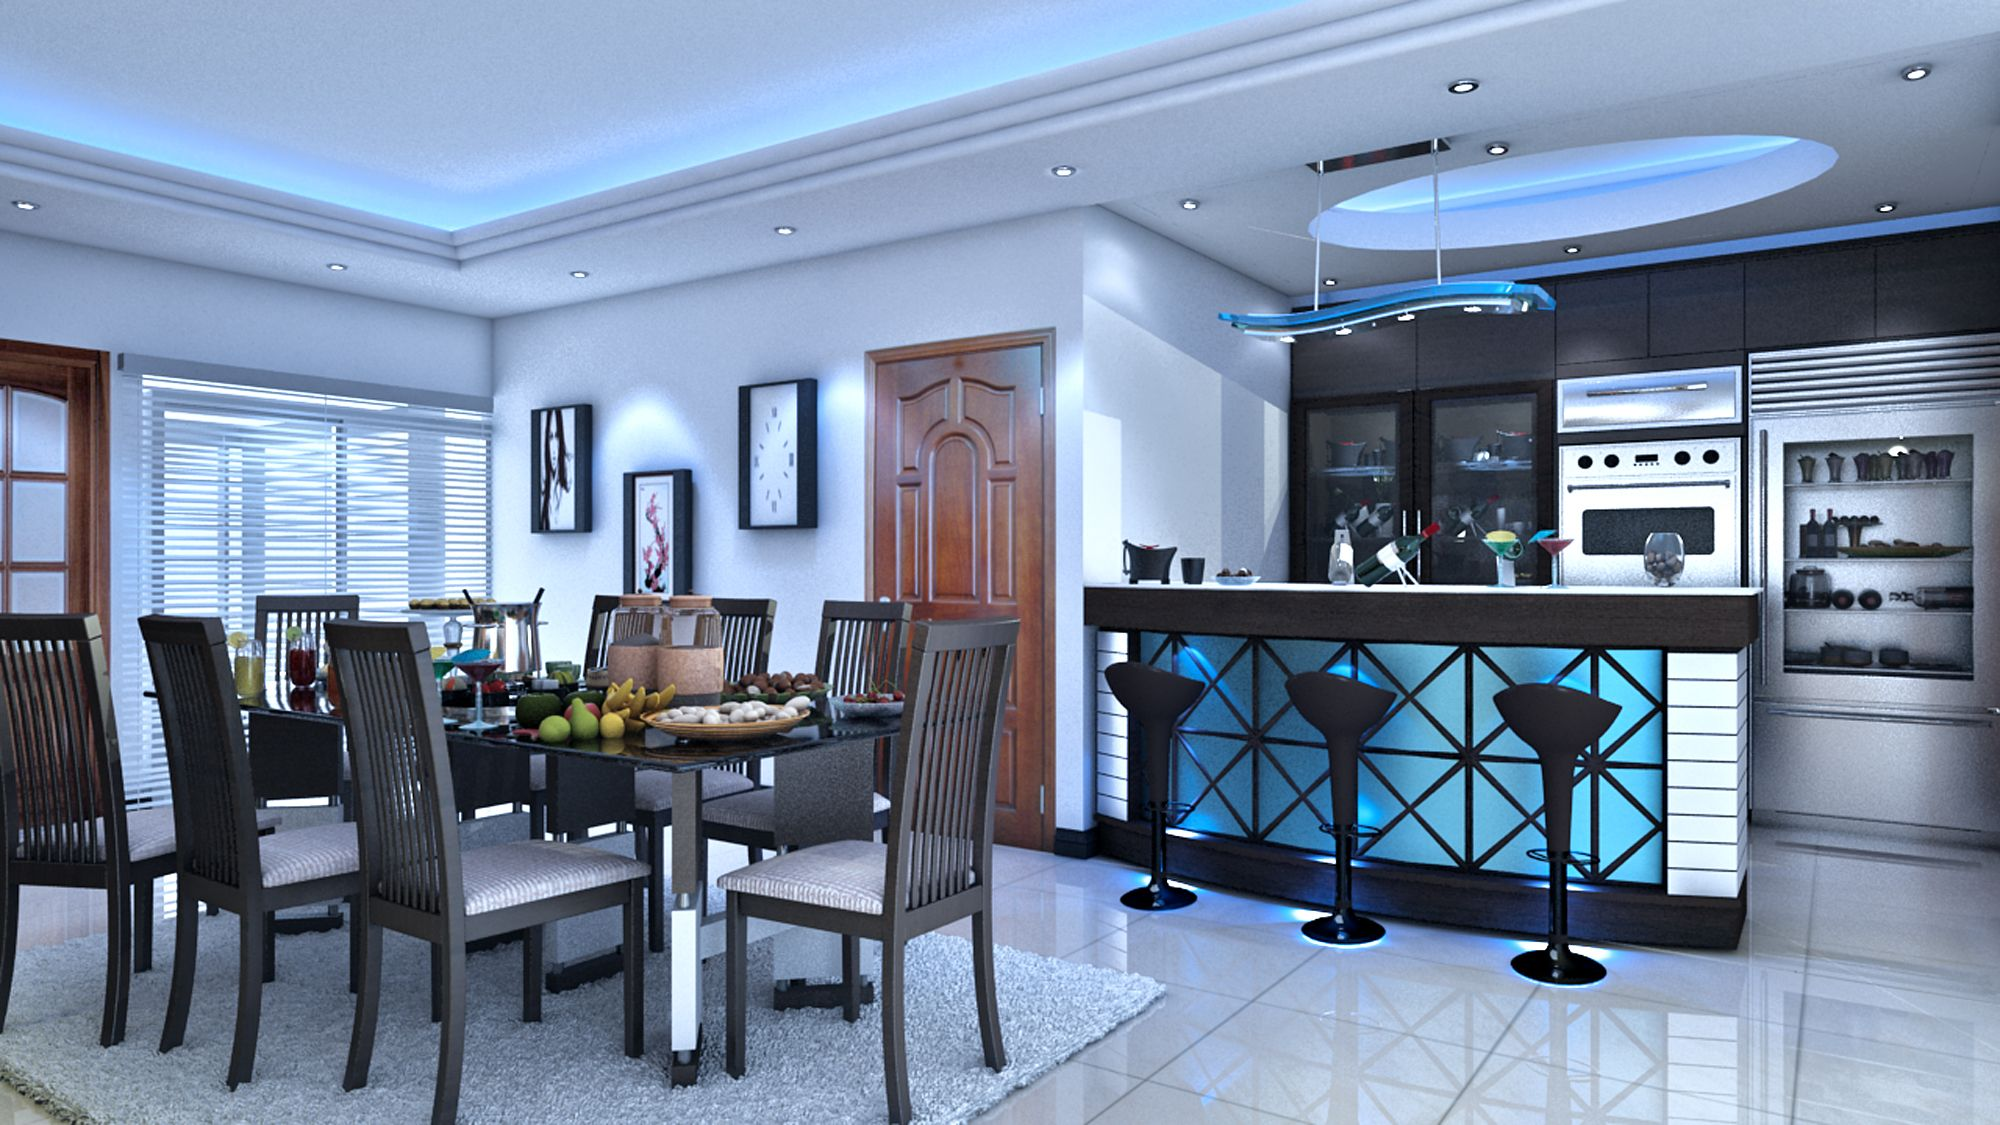 Best Interior Design Company in Bangladesh